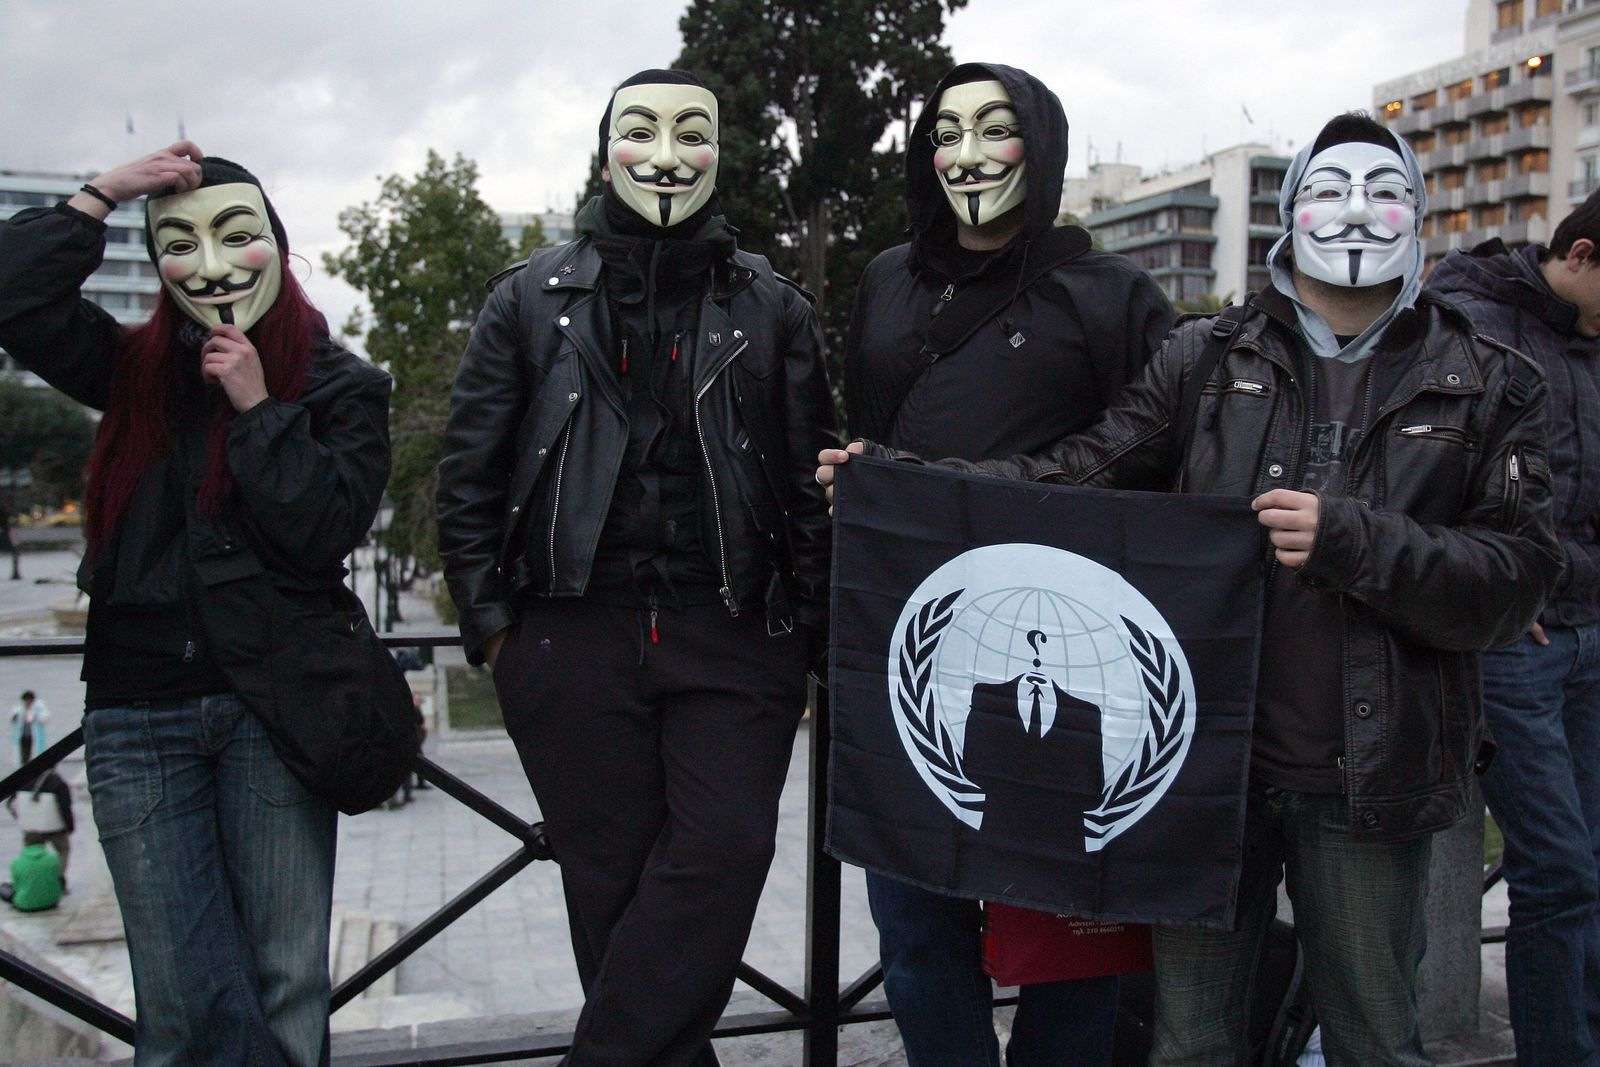 Anti-Acta demonstration in Athgens